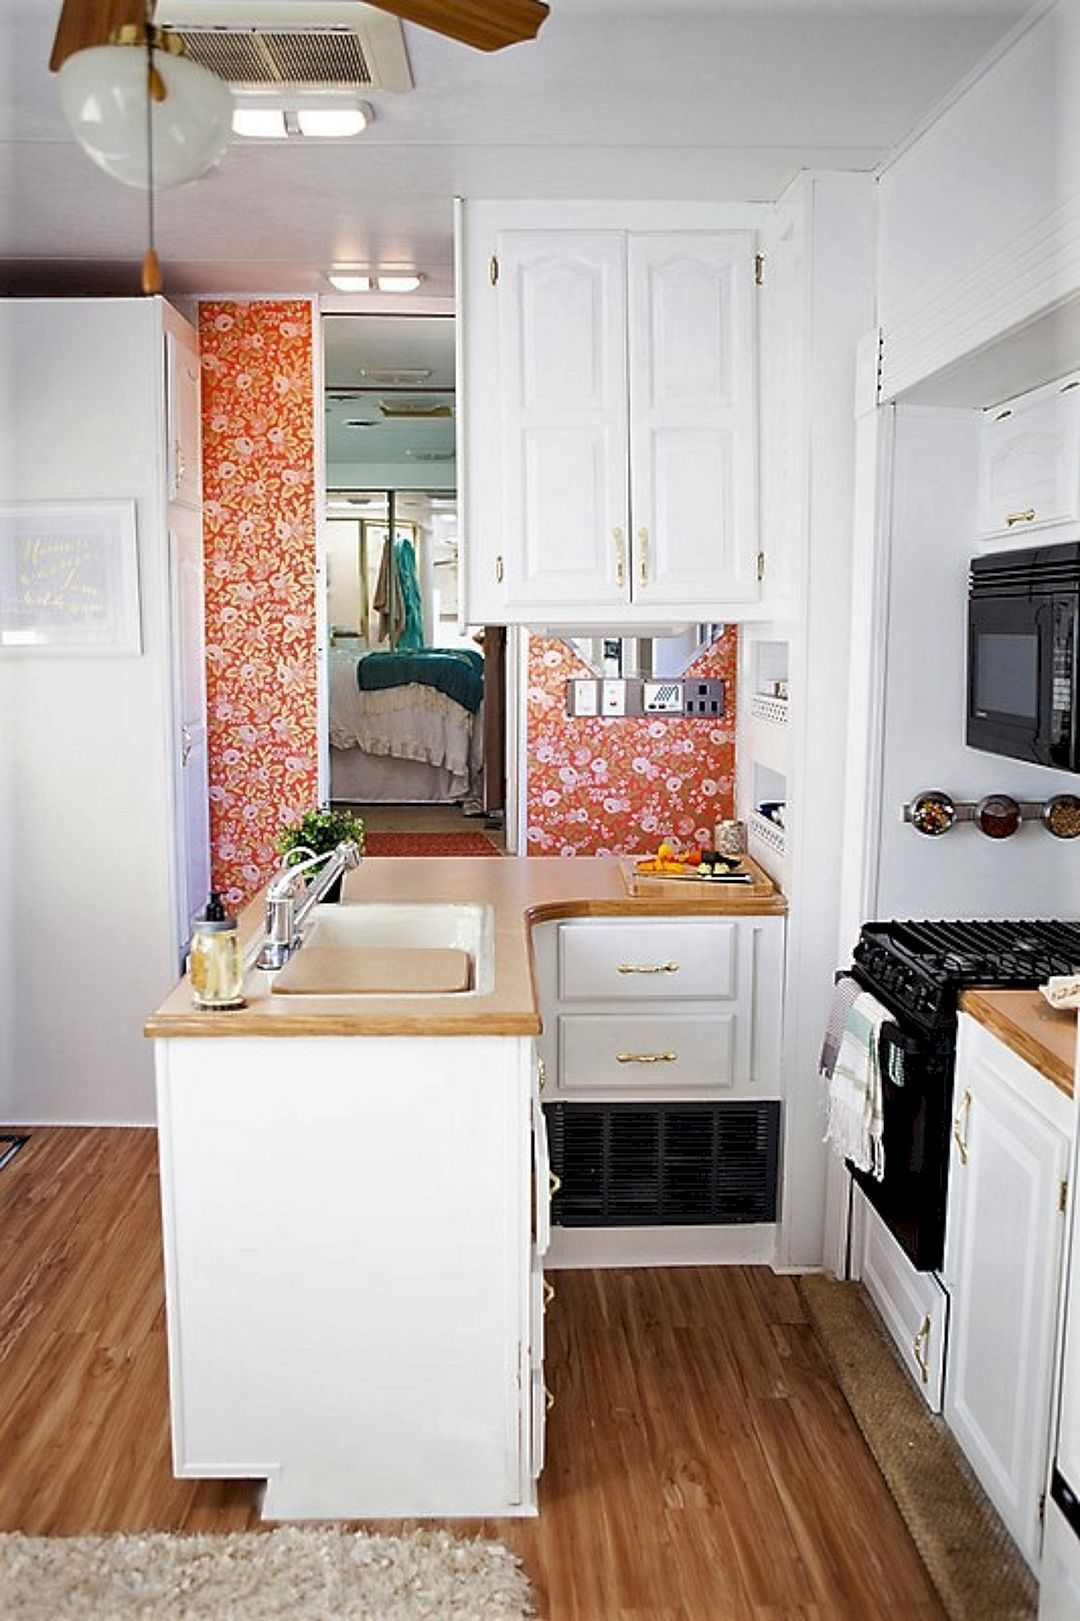 47 incredible rv renovation popular ideas nowadays for a